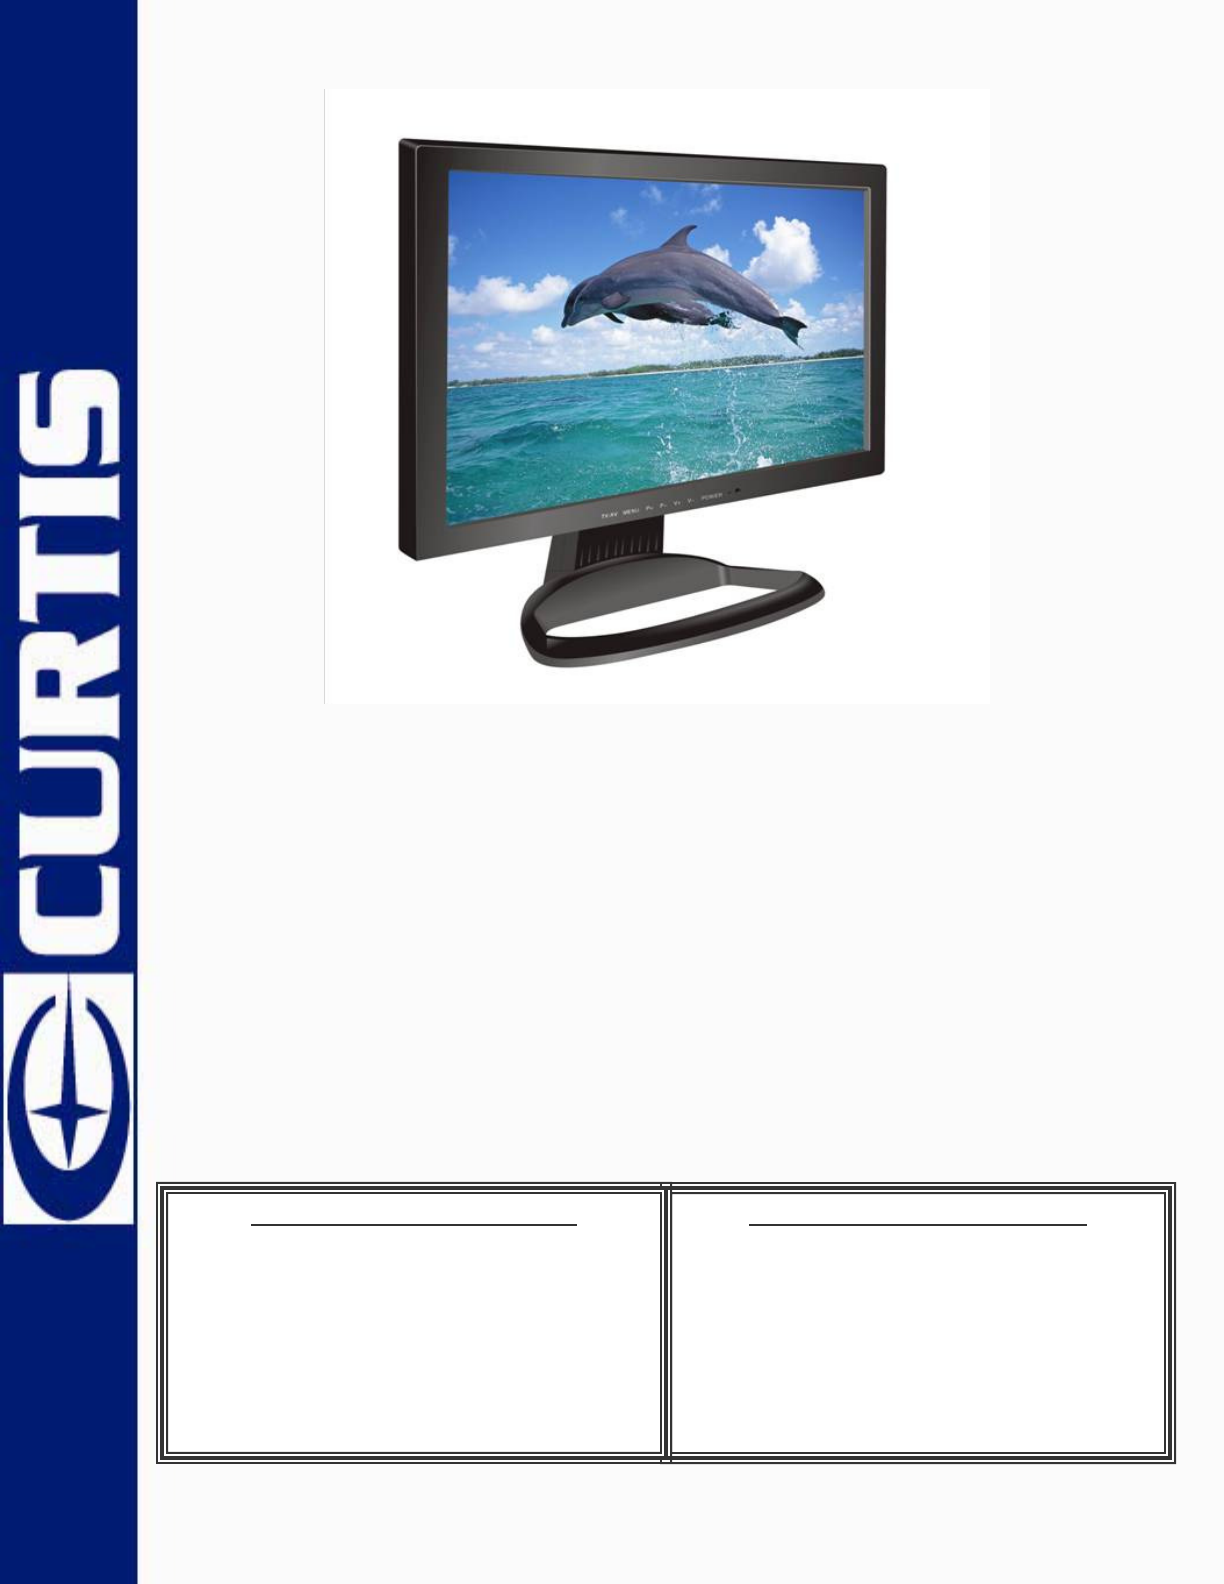 curtis flat panel television lcd1701a user guide manualsonline com rh tv manualsonline com Curtis TV DVD Combo Who Manufactures Curtis TV